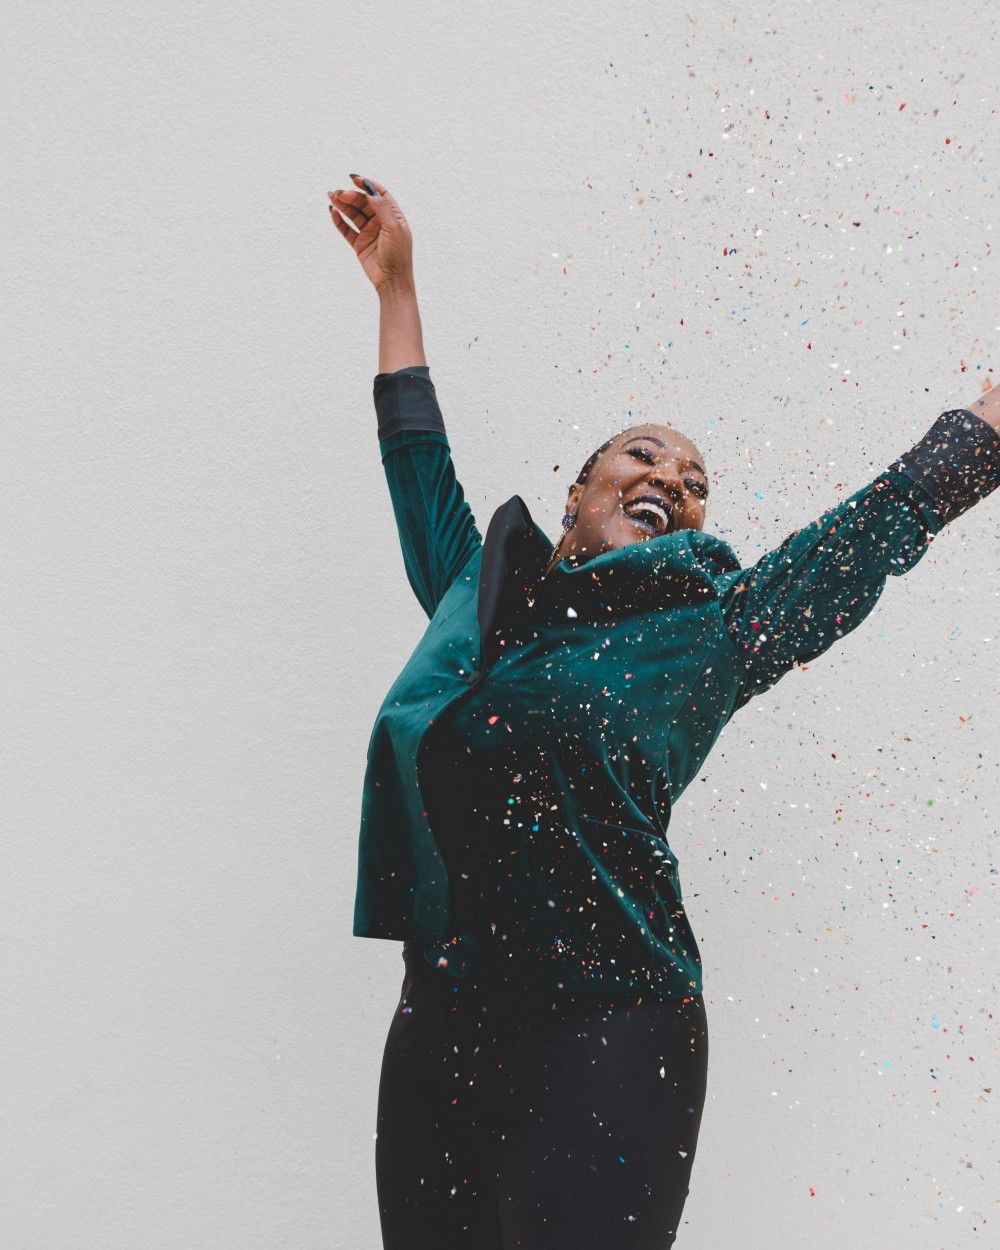 A joyous black woman dressed in a velvet green jacket sprinkles confetti in the air.